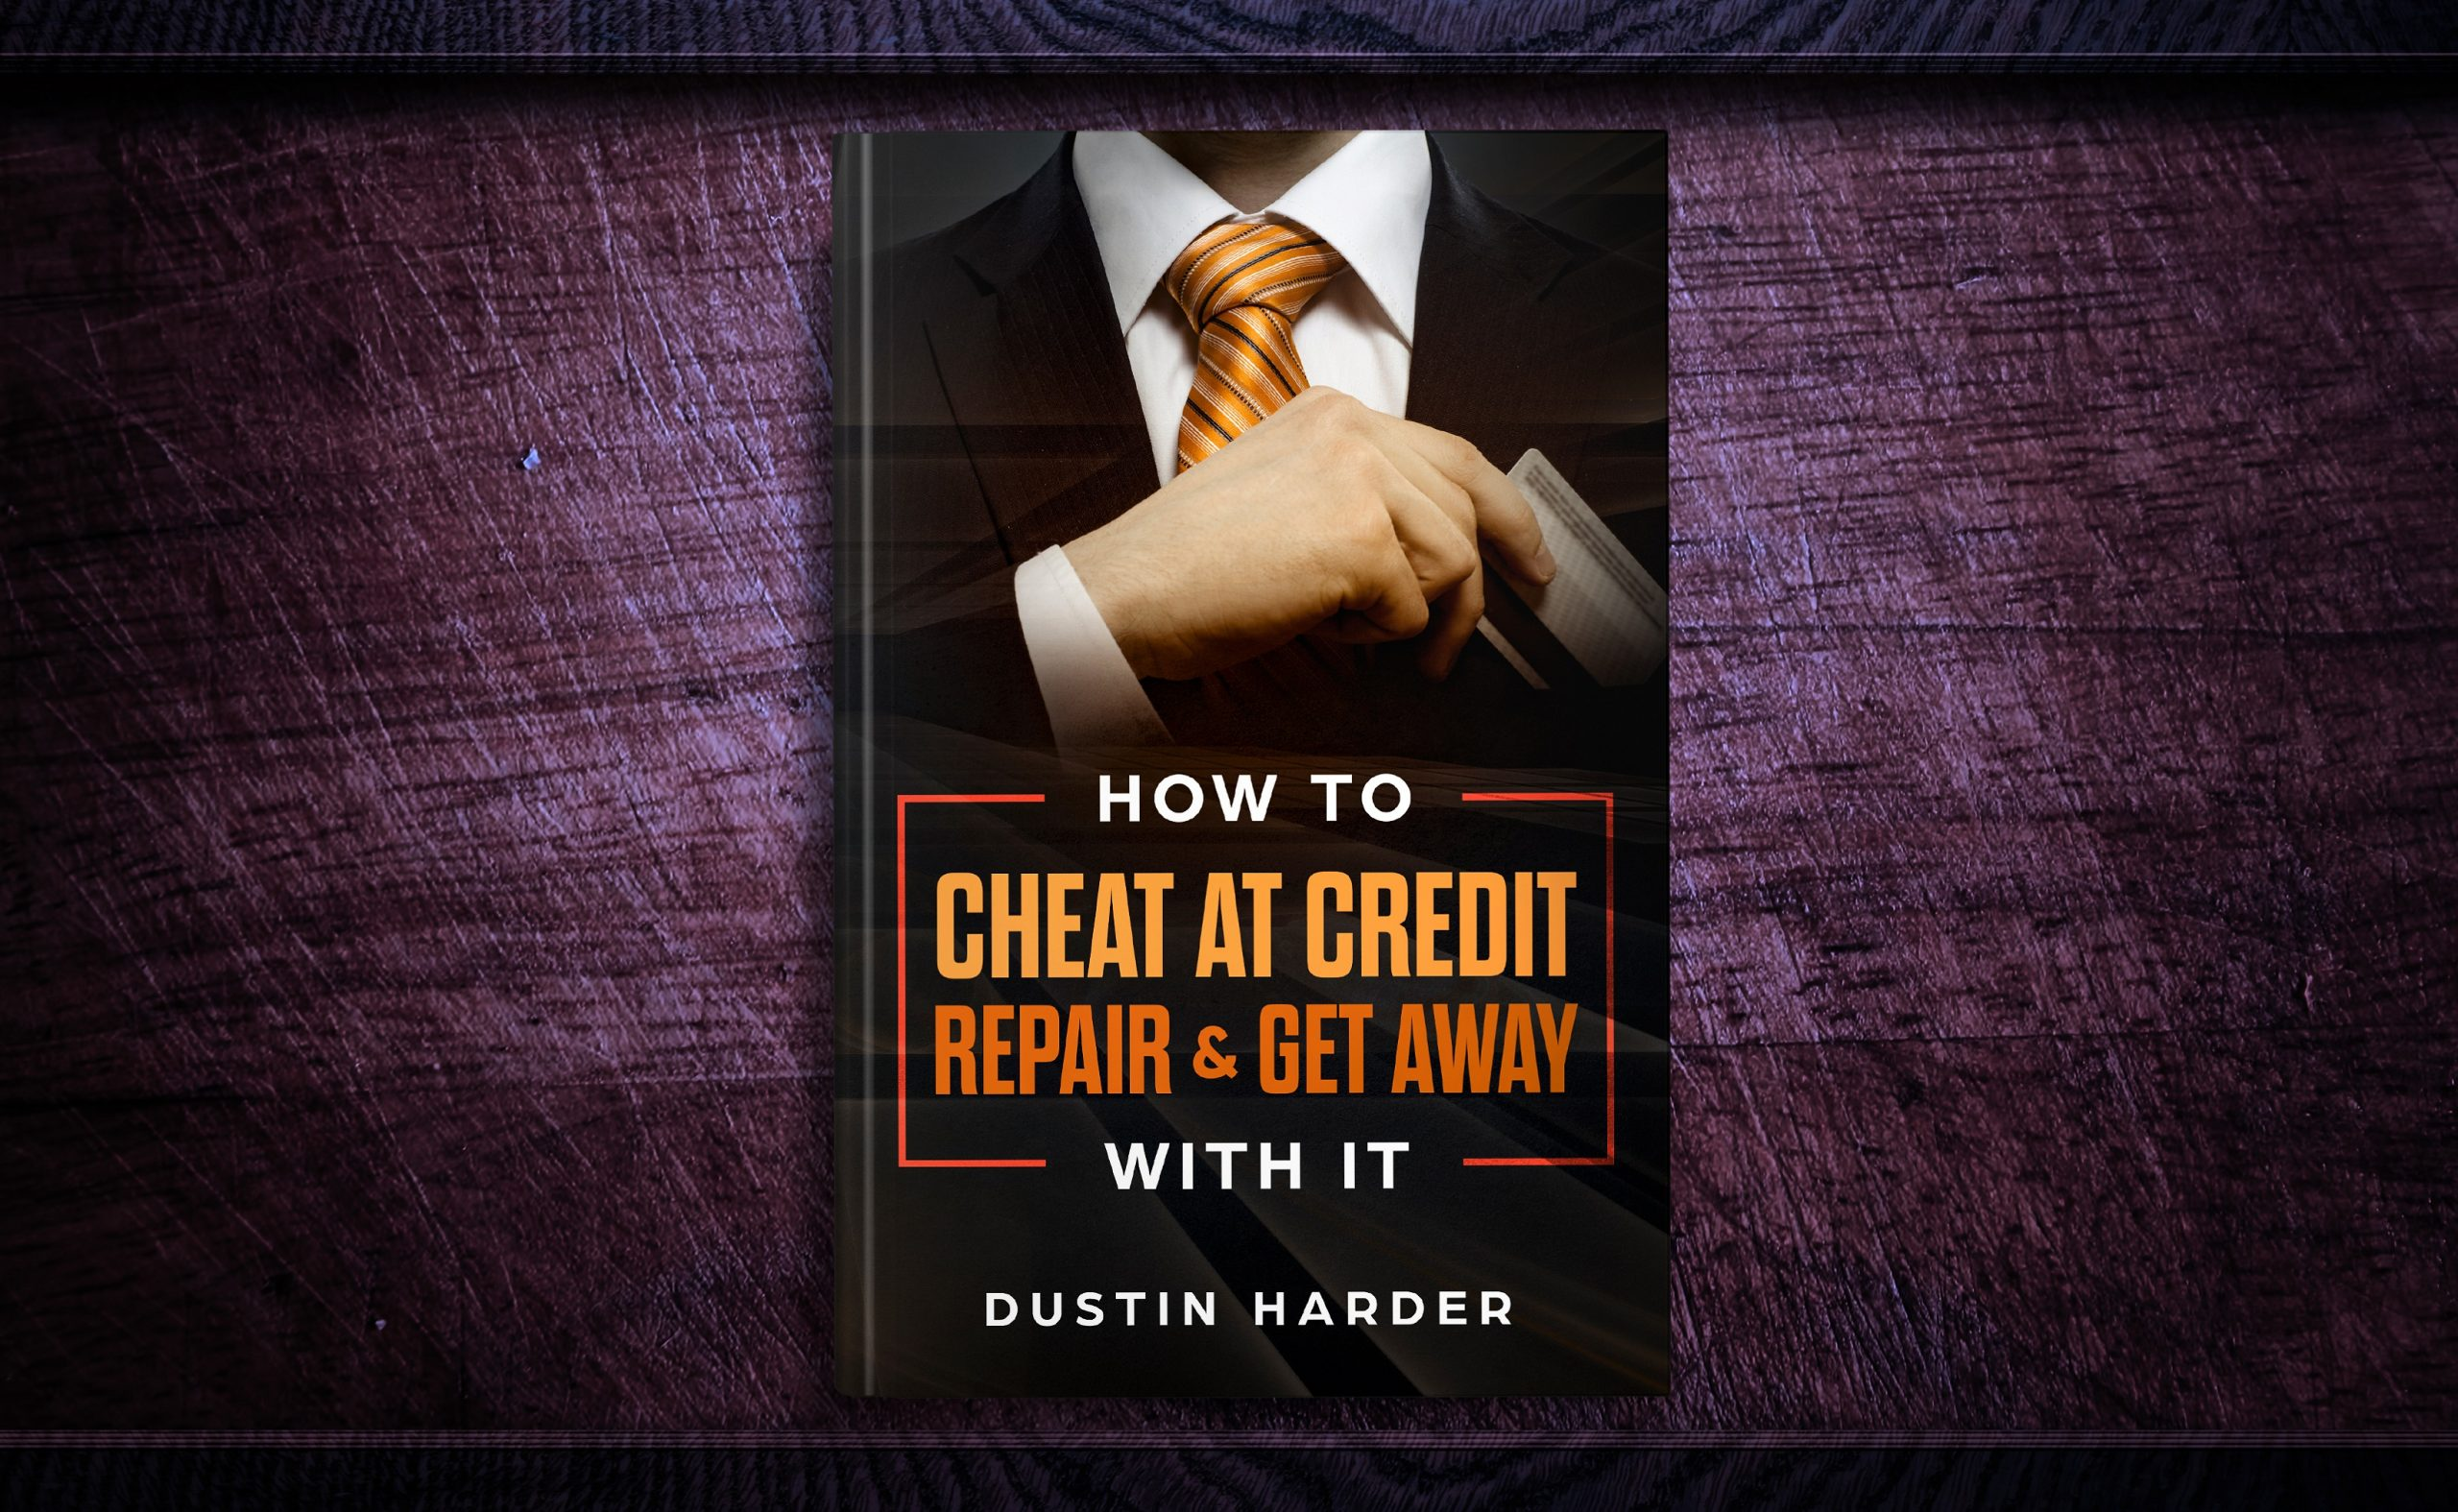 How To Cheat At Credit Repair & Get Away With It 3